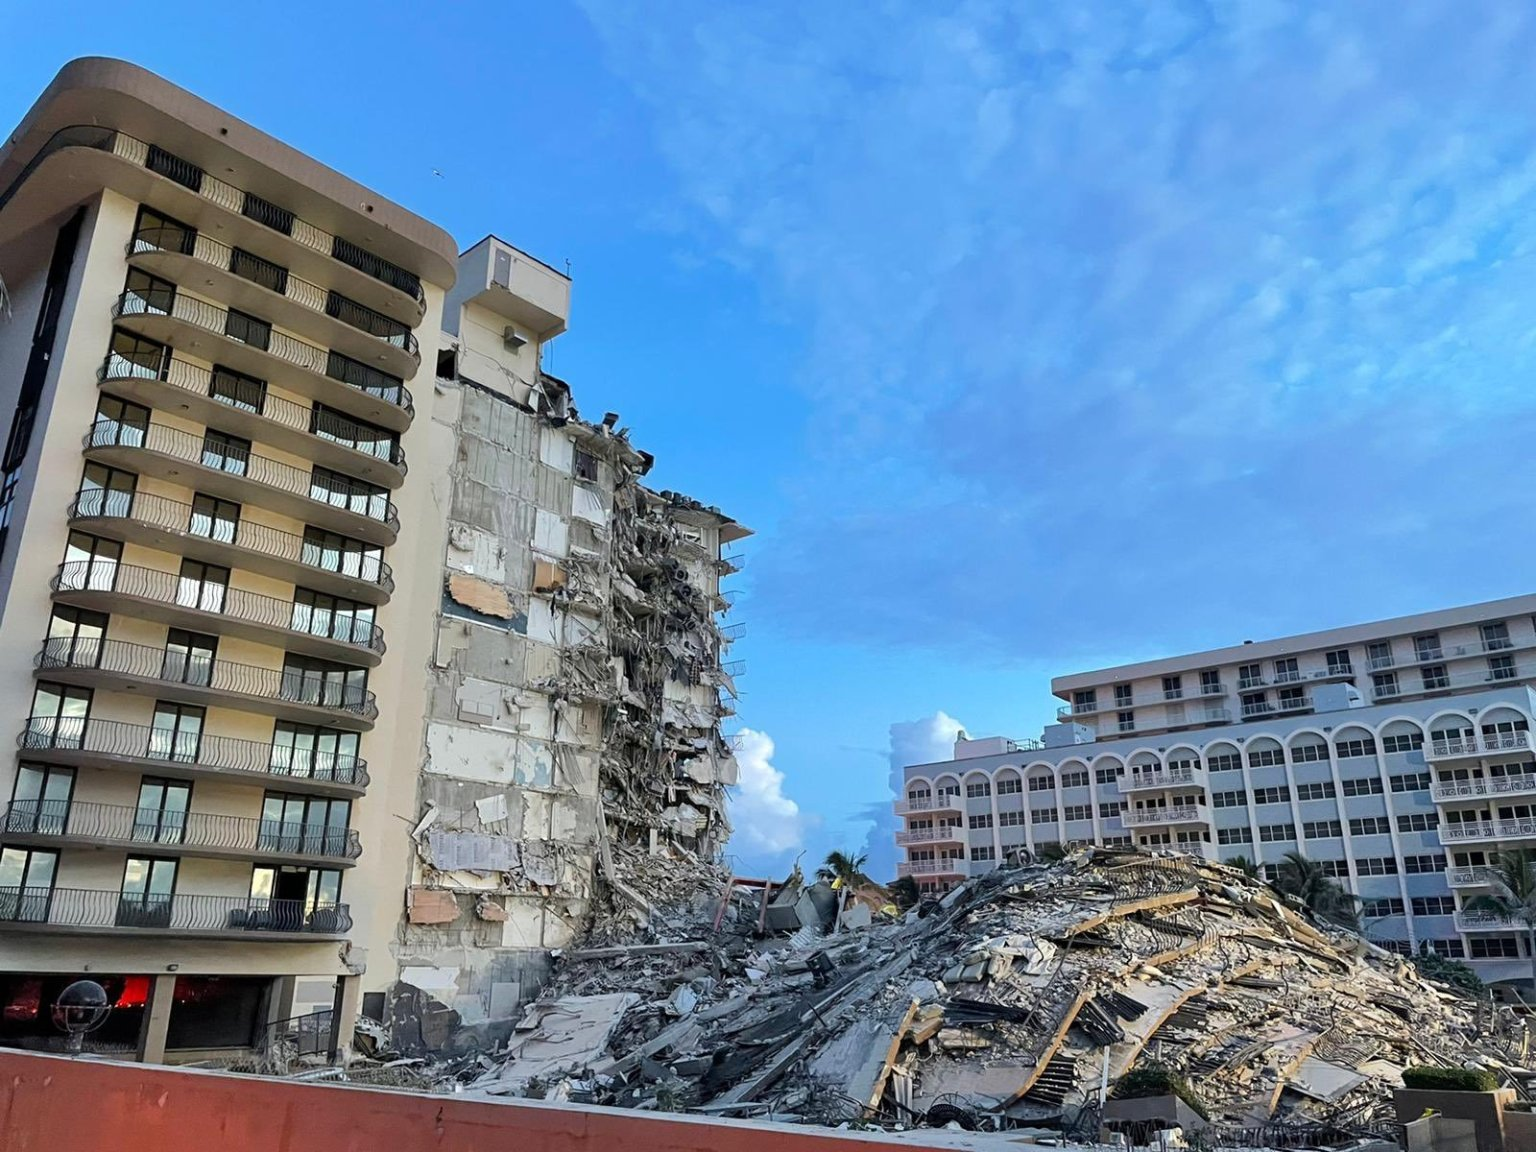 Death toll in Florida building collapse rises to 4, with 159 people now unaccounted for